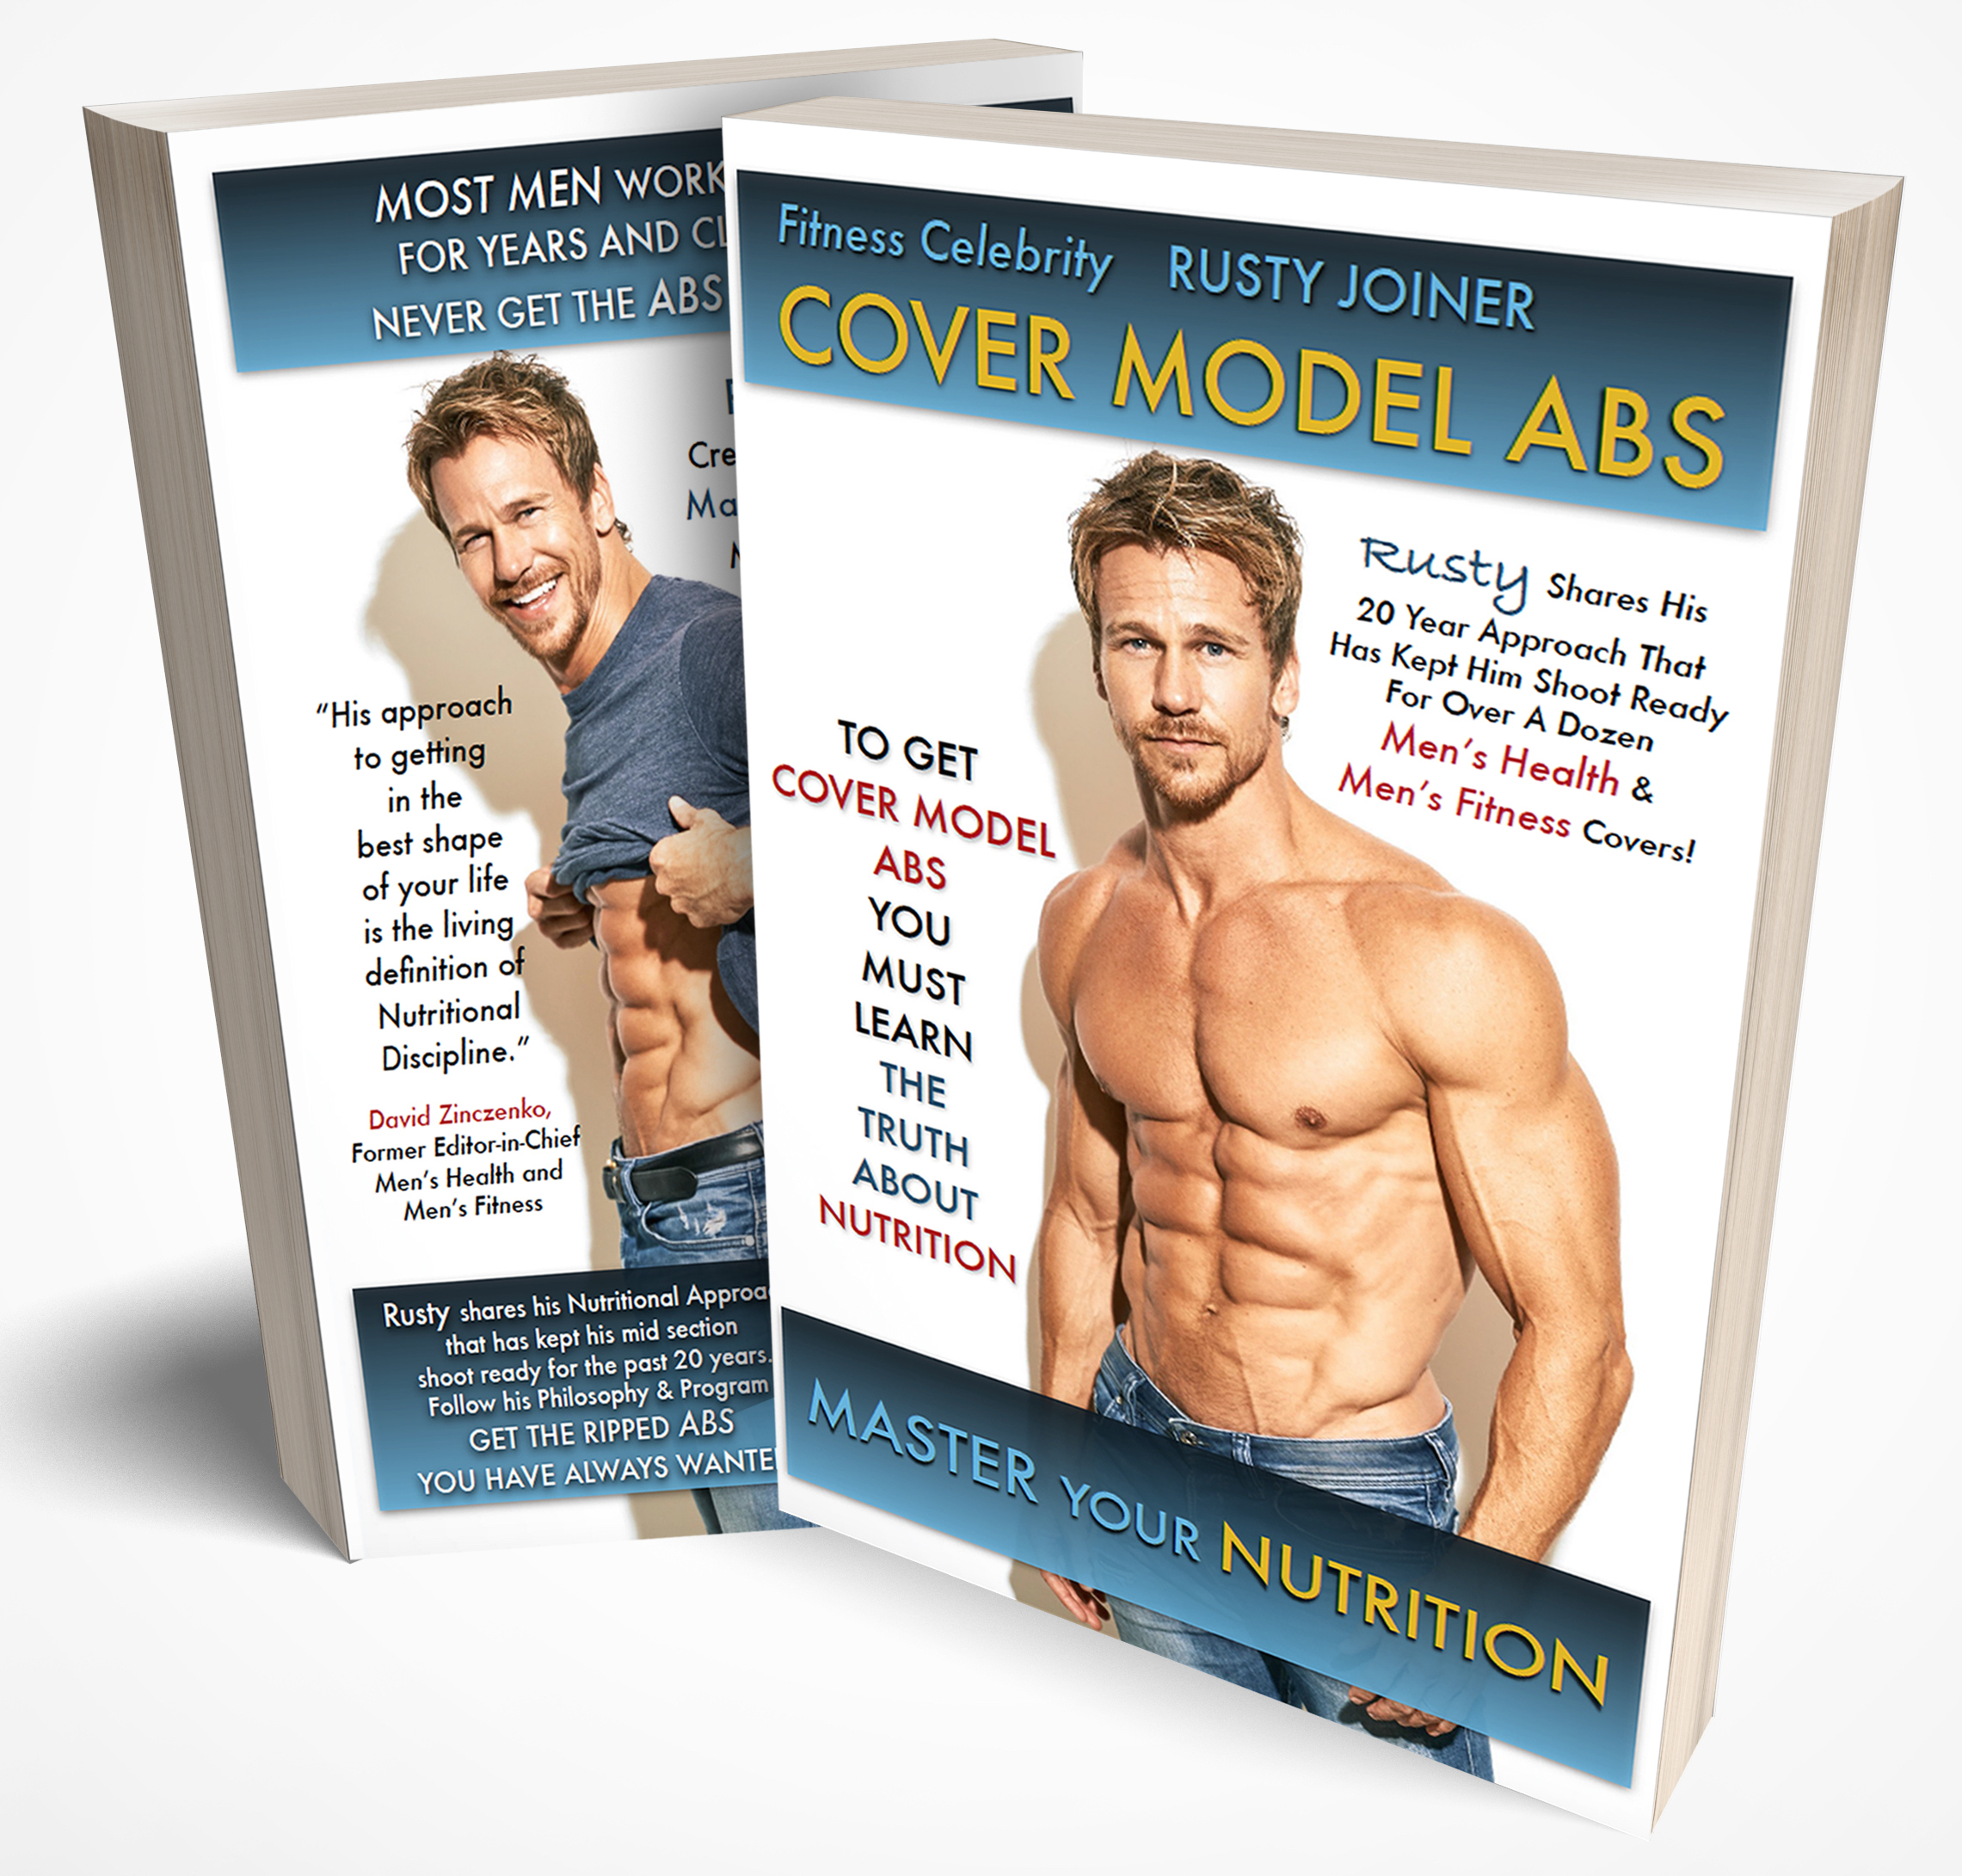 COVER MODEL ABS BOOK - Rusty shares his fitness journey in his new bookcover model absSee how he stays in elite shape for his TV & Film roles.Follow the nutritional plan that led Rusty to all his covers and his Master's Physique Title.